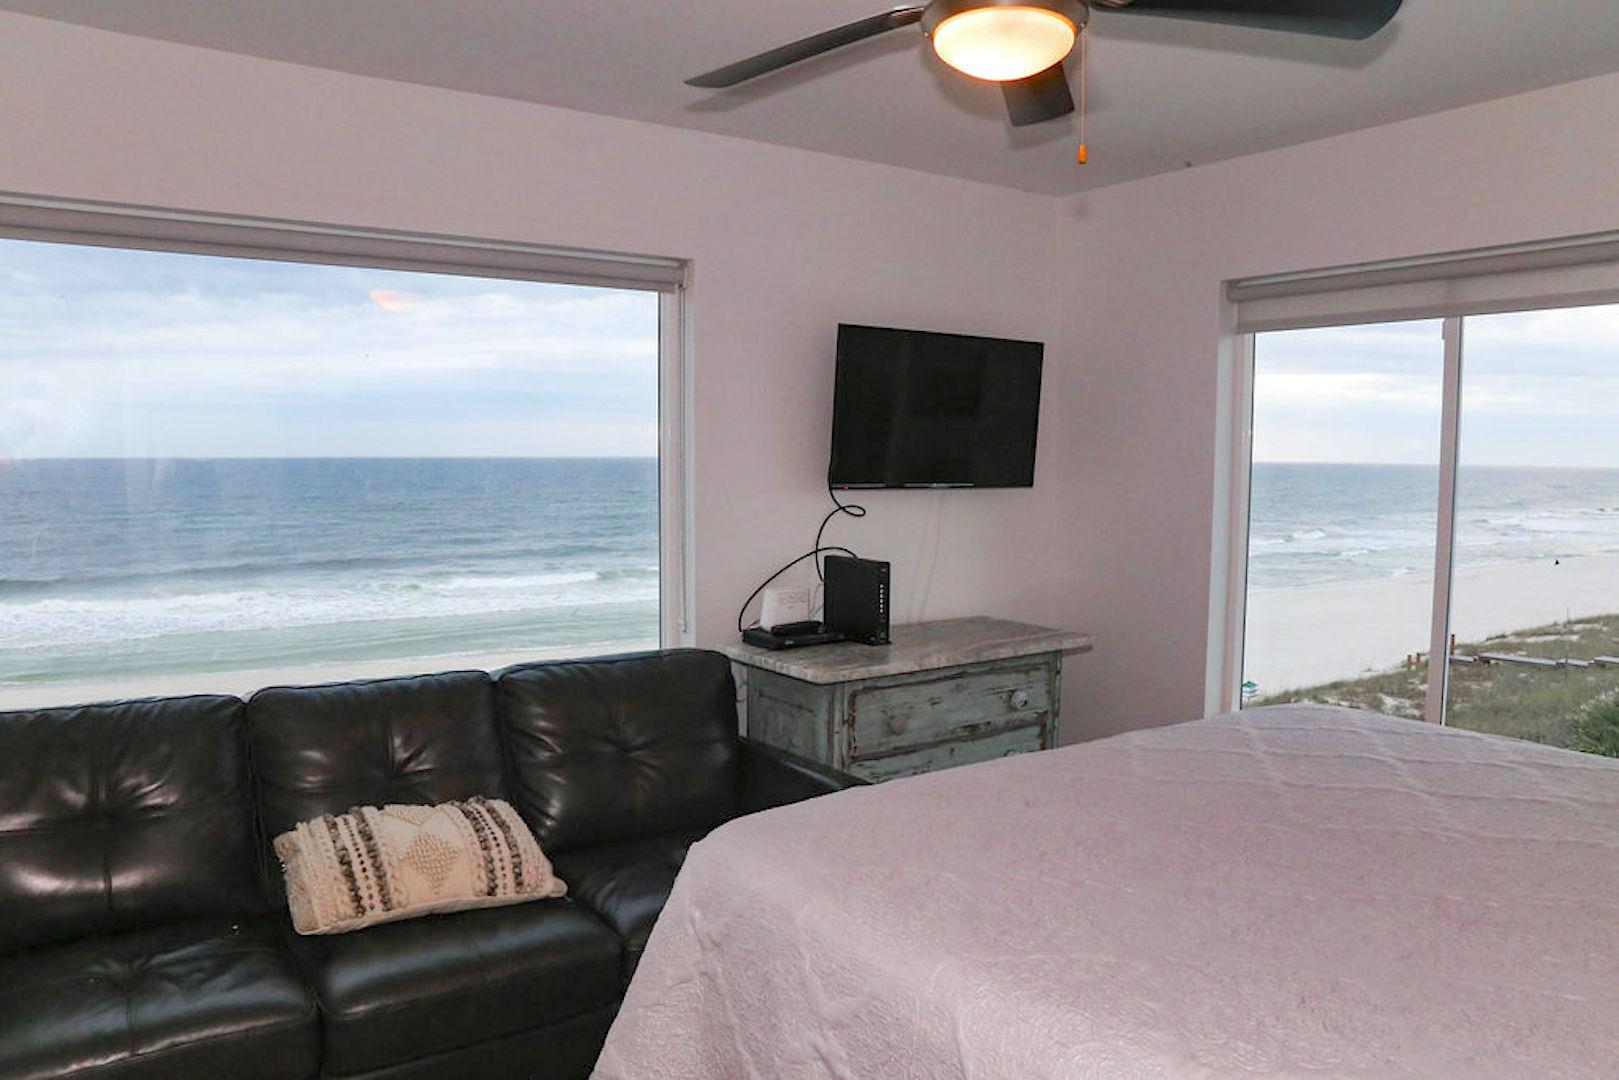 BR # 8 ocean view king bed with bath, flat screen